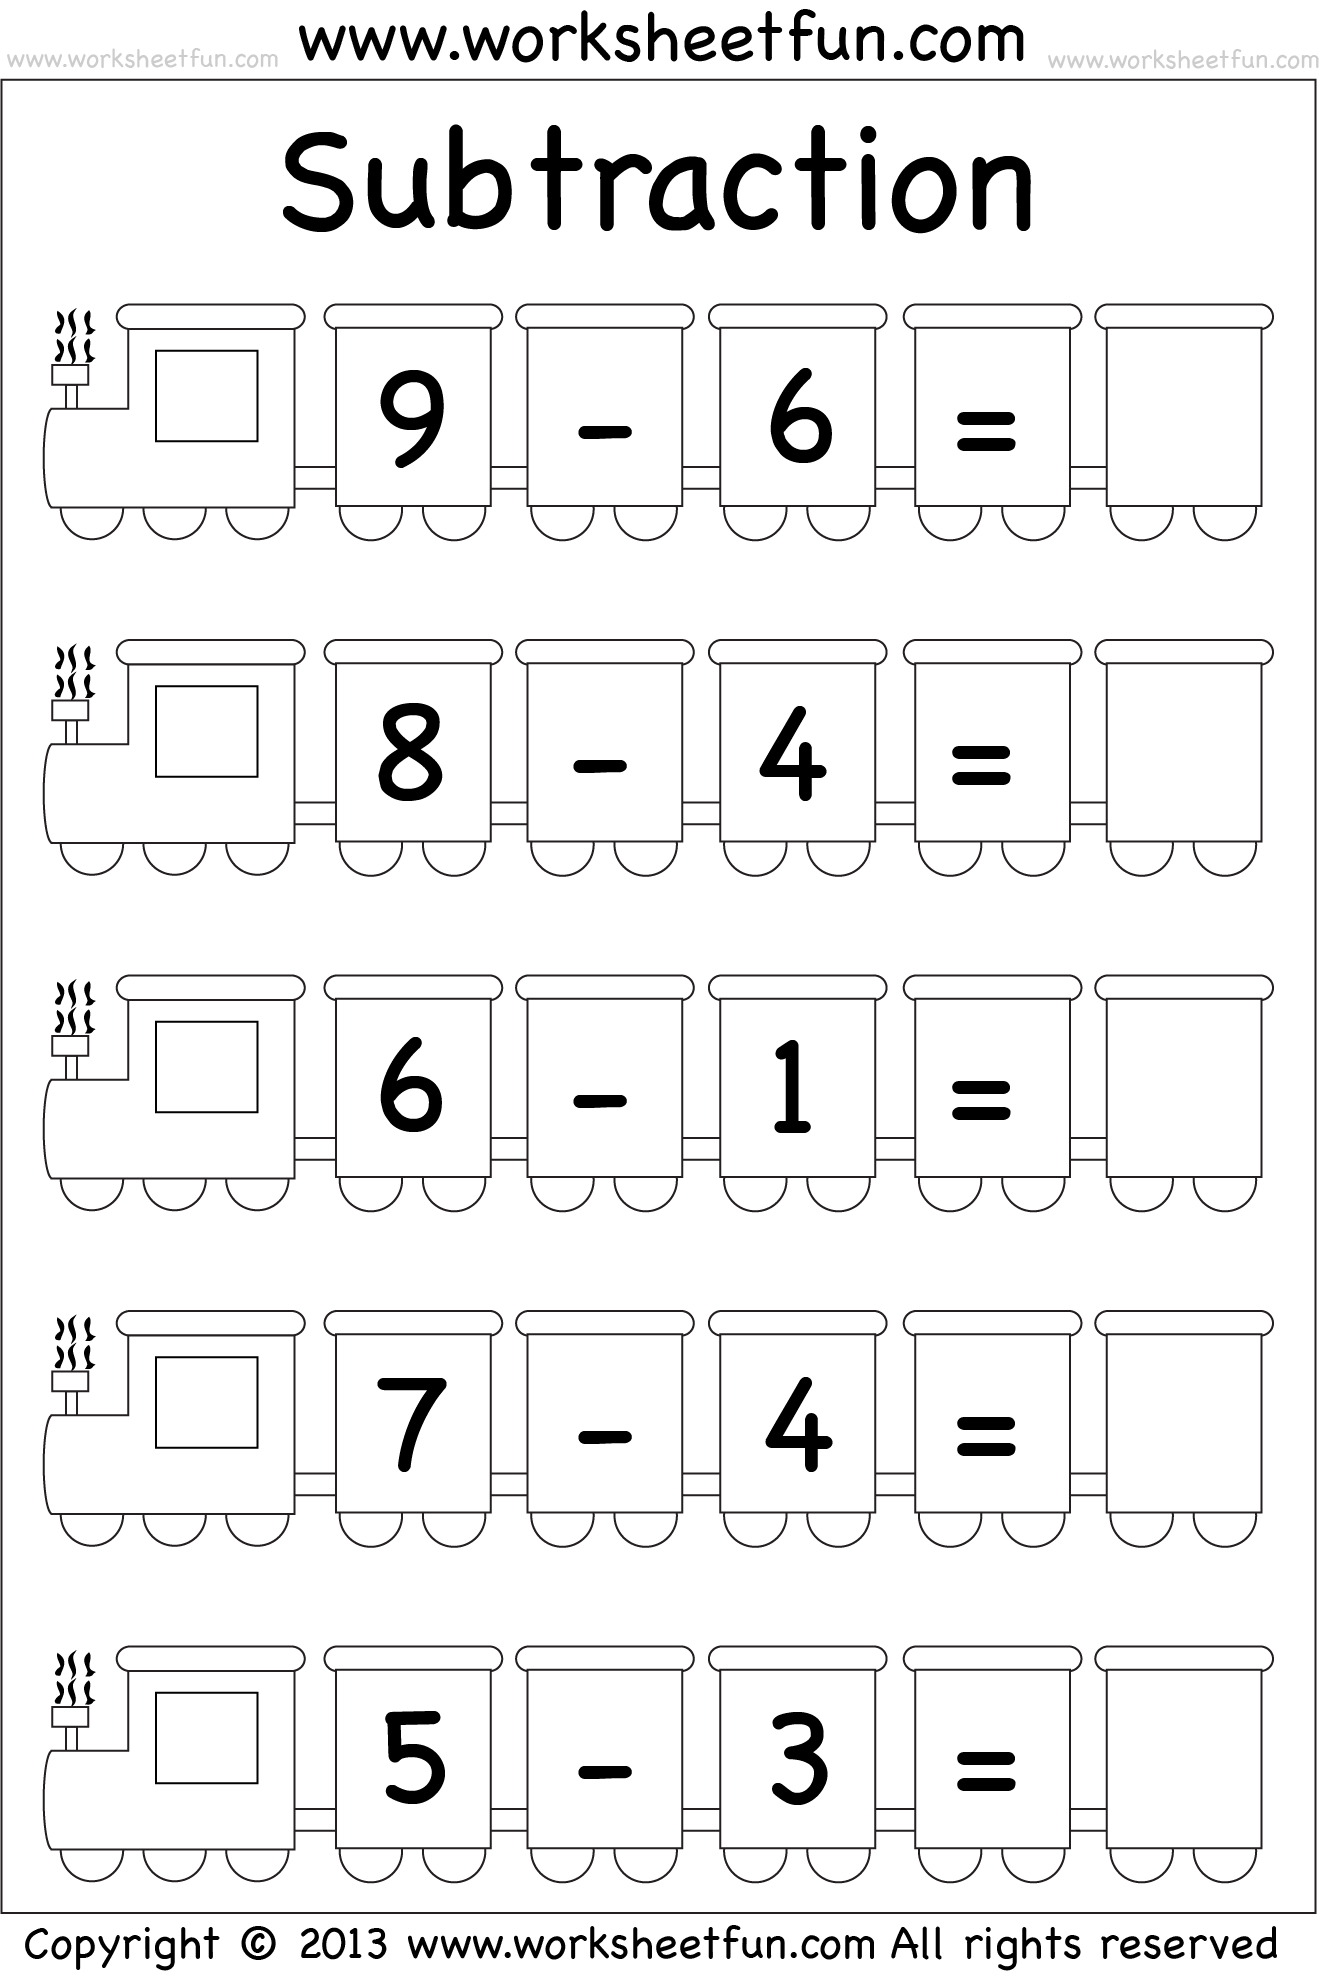 Worksheets Subtraction Worksheets For Kindergarten worksheet 10001294 subtraction worksheets kindergarten beginner 5 kindergarten